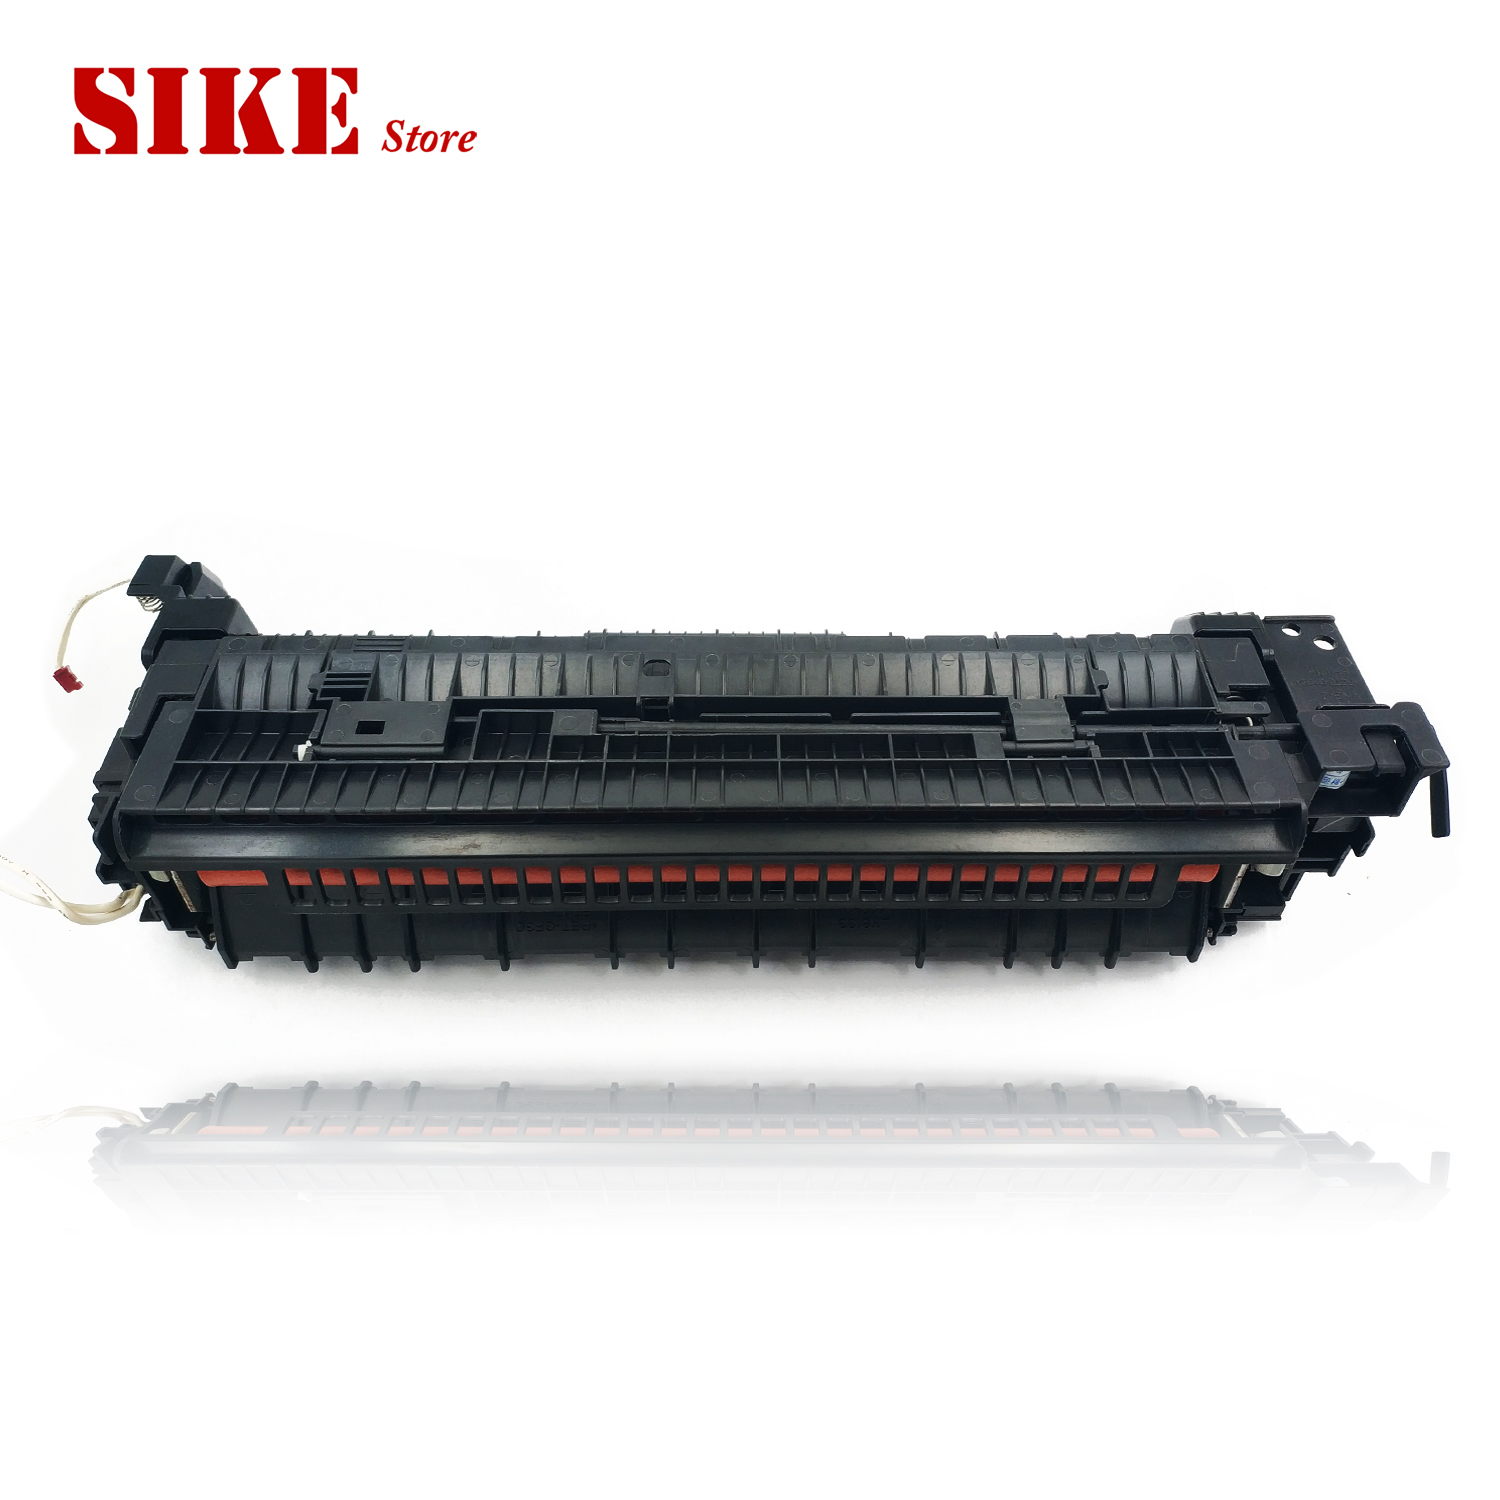 Fuser Unit Assy For Brother DCP-1510 DCP-1512 DCP-1518 DCP-1519 DCP 1510 1512 1518 1519 Fuser AssemblyFuser Unit Assy For Brother DCP-1510 DCP-1512 DCP-1518 DCP-1519 DCP 1510 1512 1518 1519 Fuser Assembly